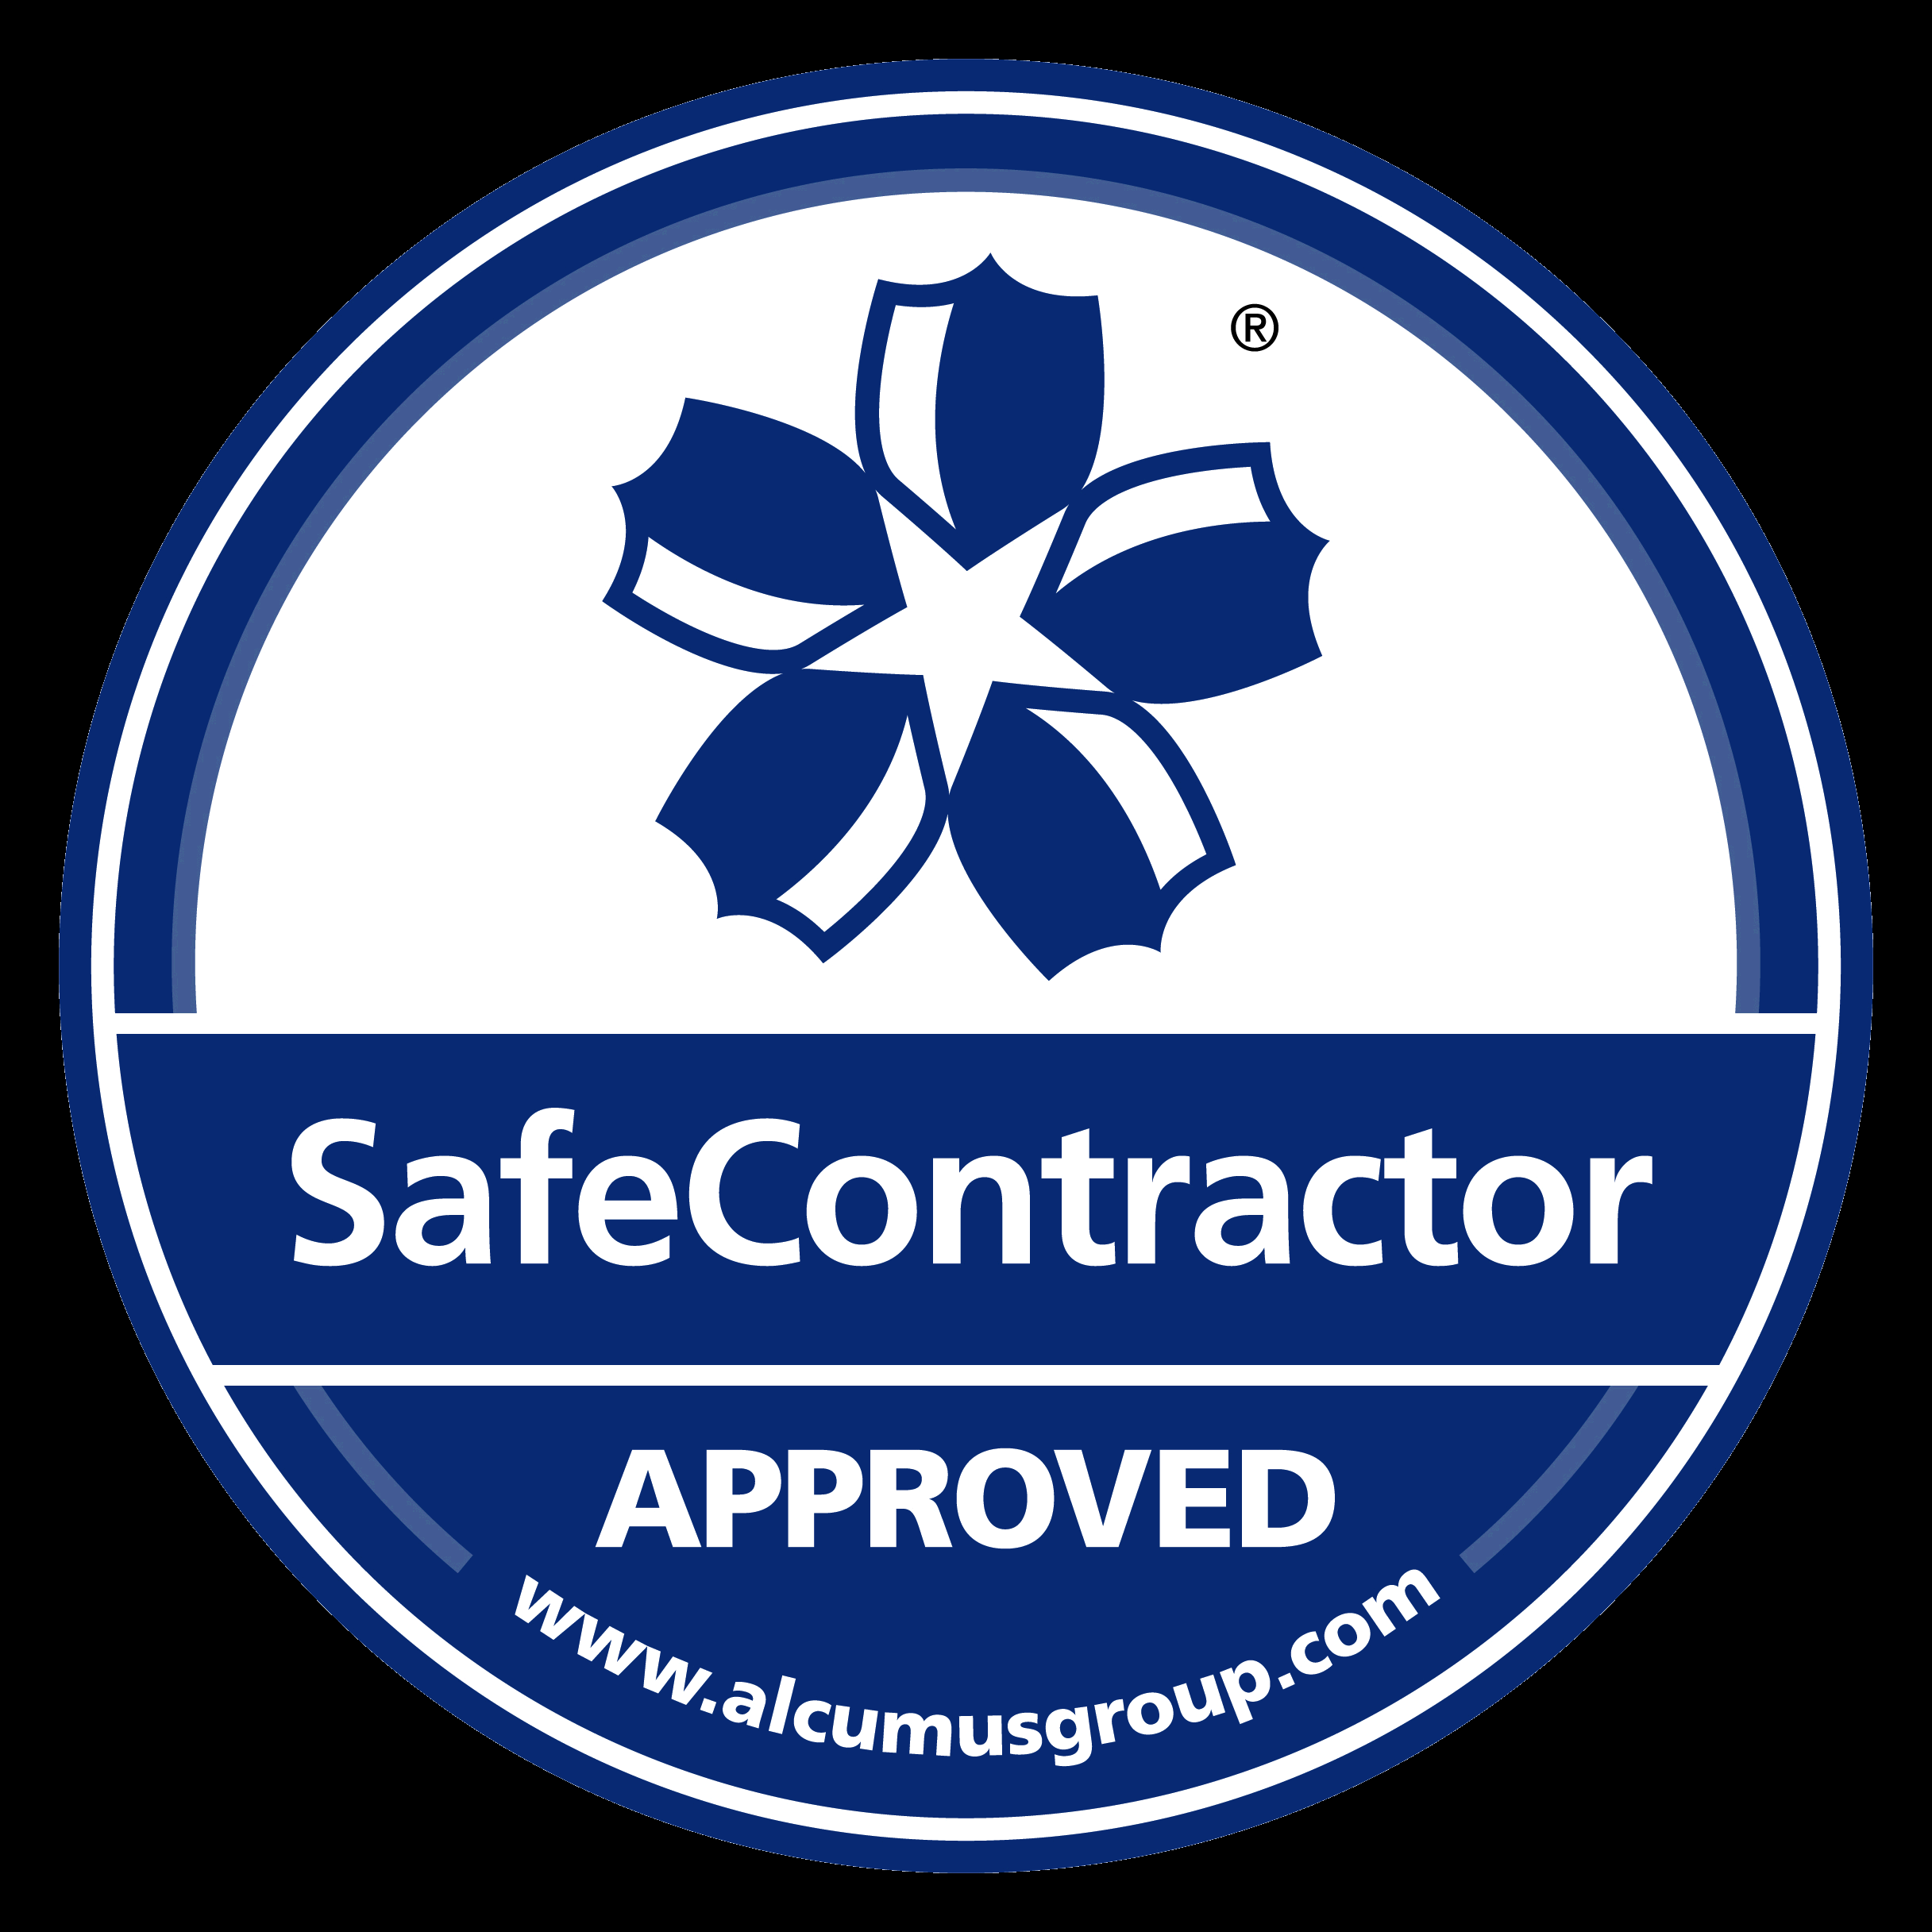 Earls Scaffolding are now SafeContractor Approved